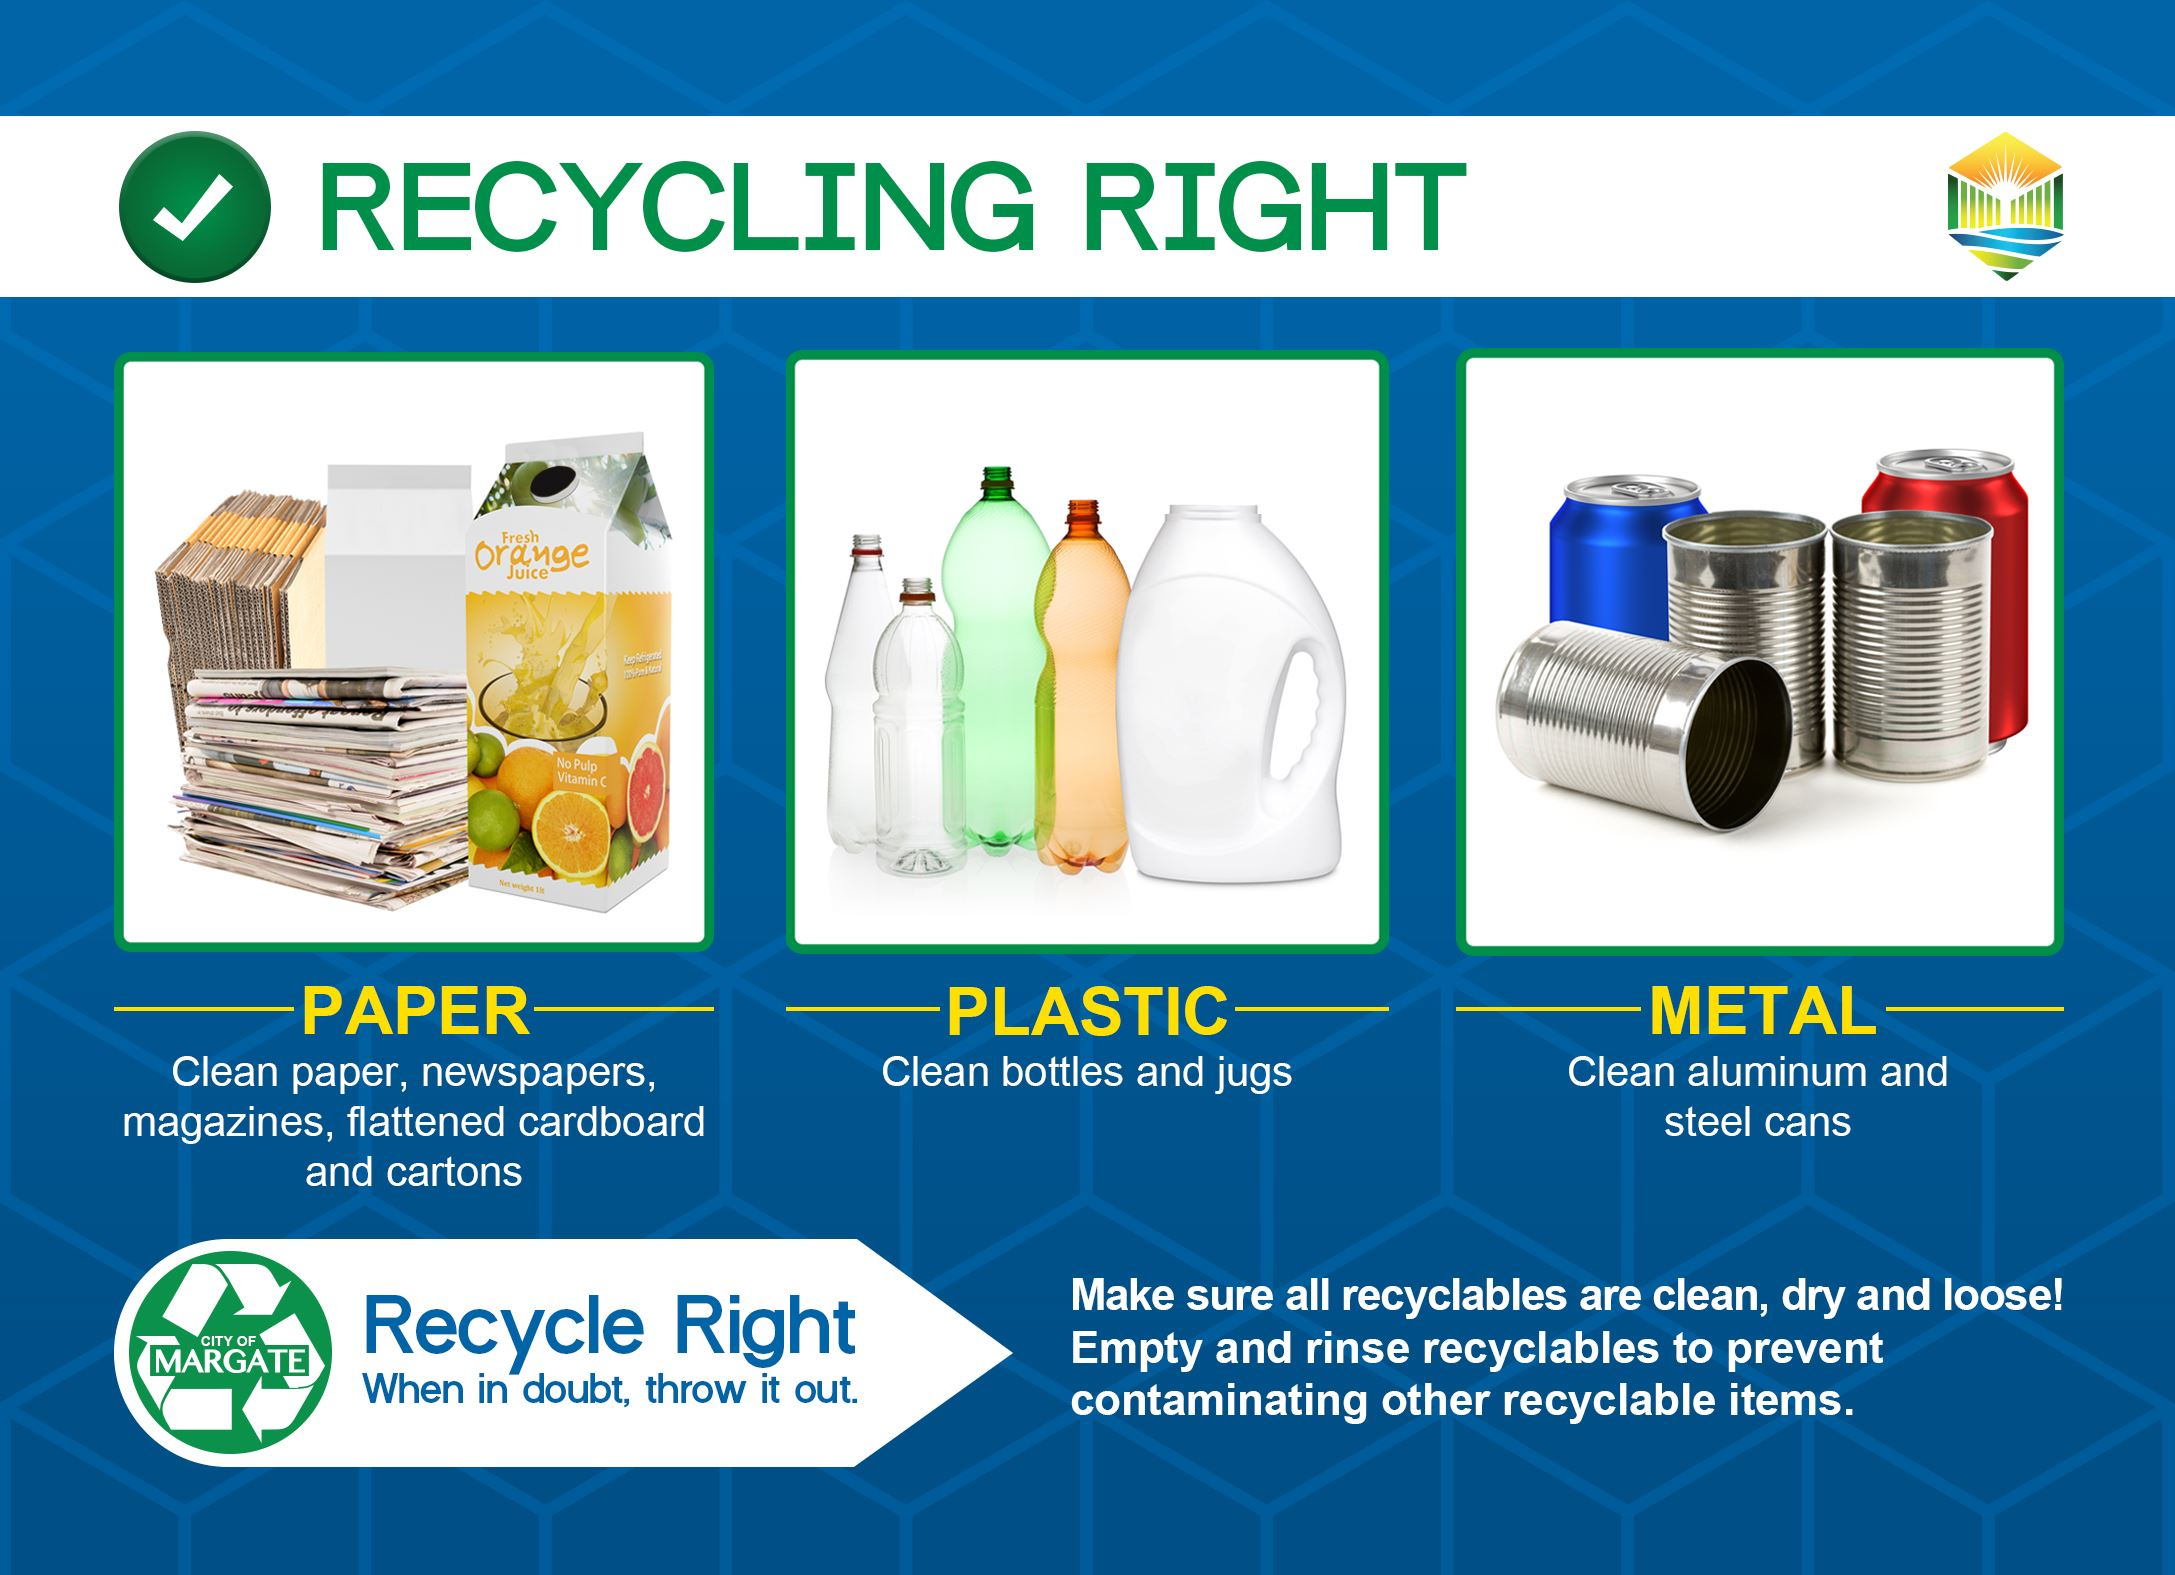 Recycling Right